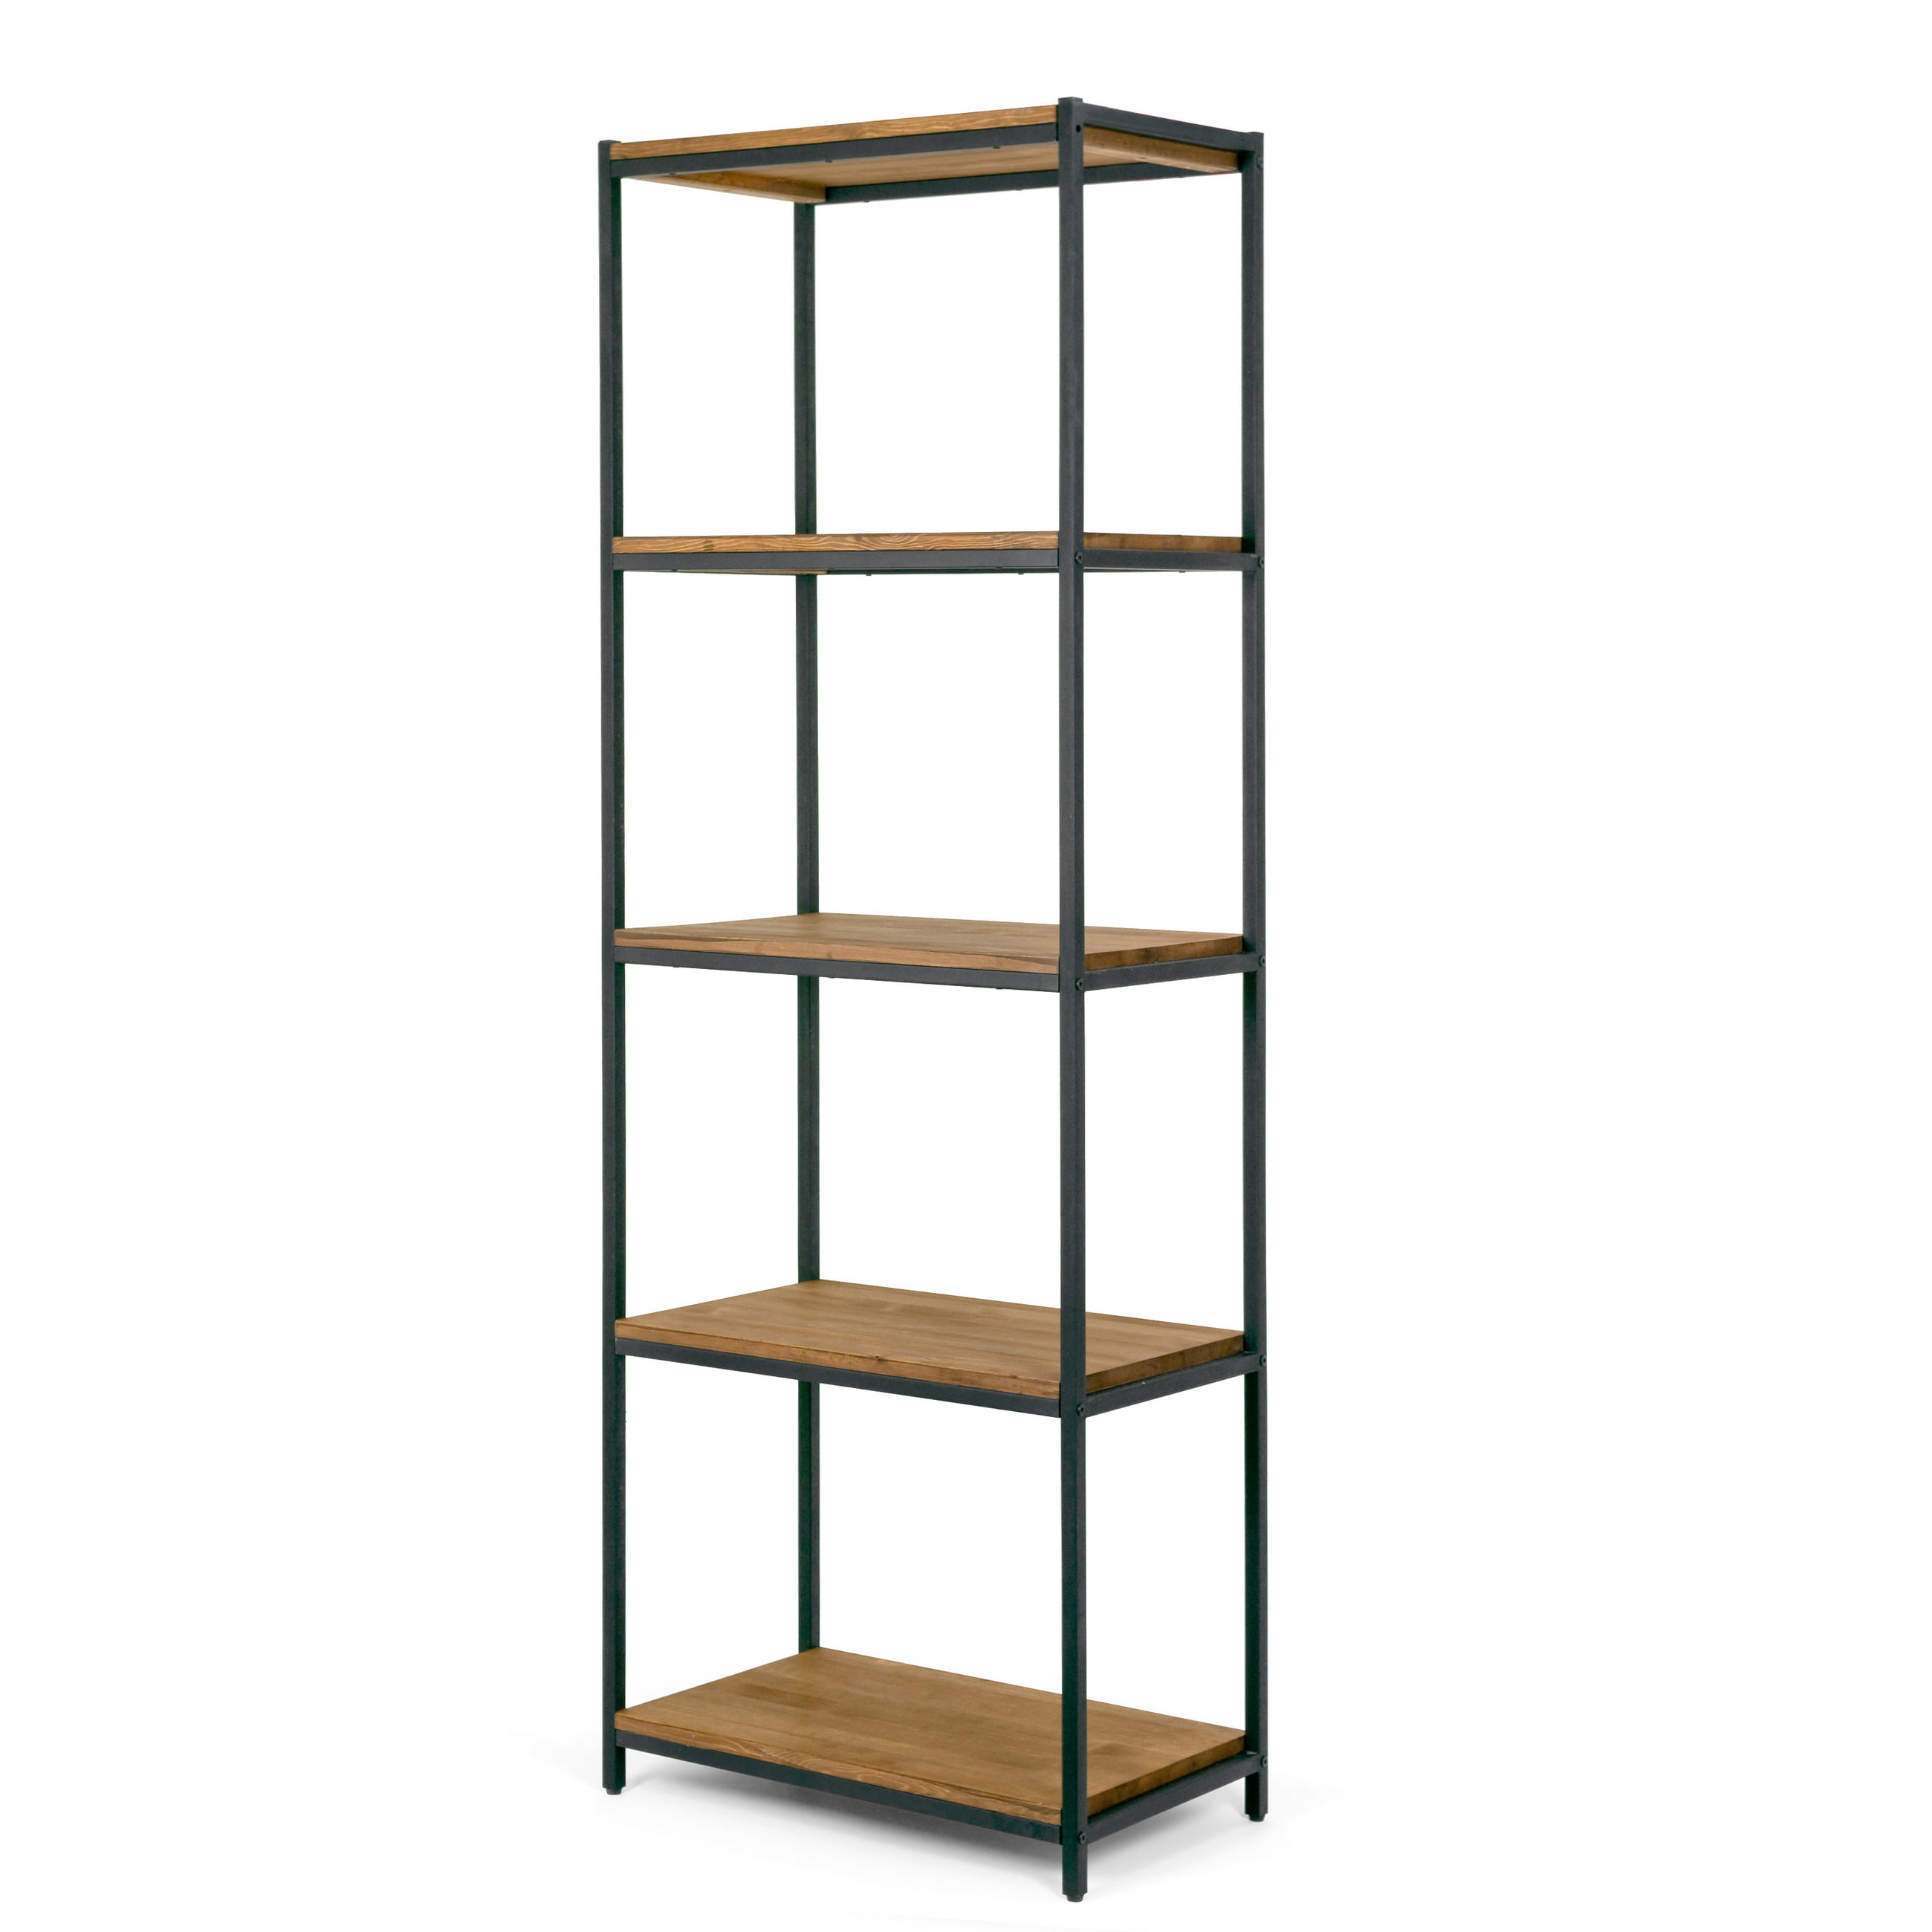 Ailis Brown Pine Wood Shelf Etagere Bookcase Media Center with Metal Frame by Glamour Home